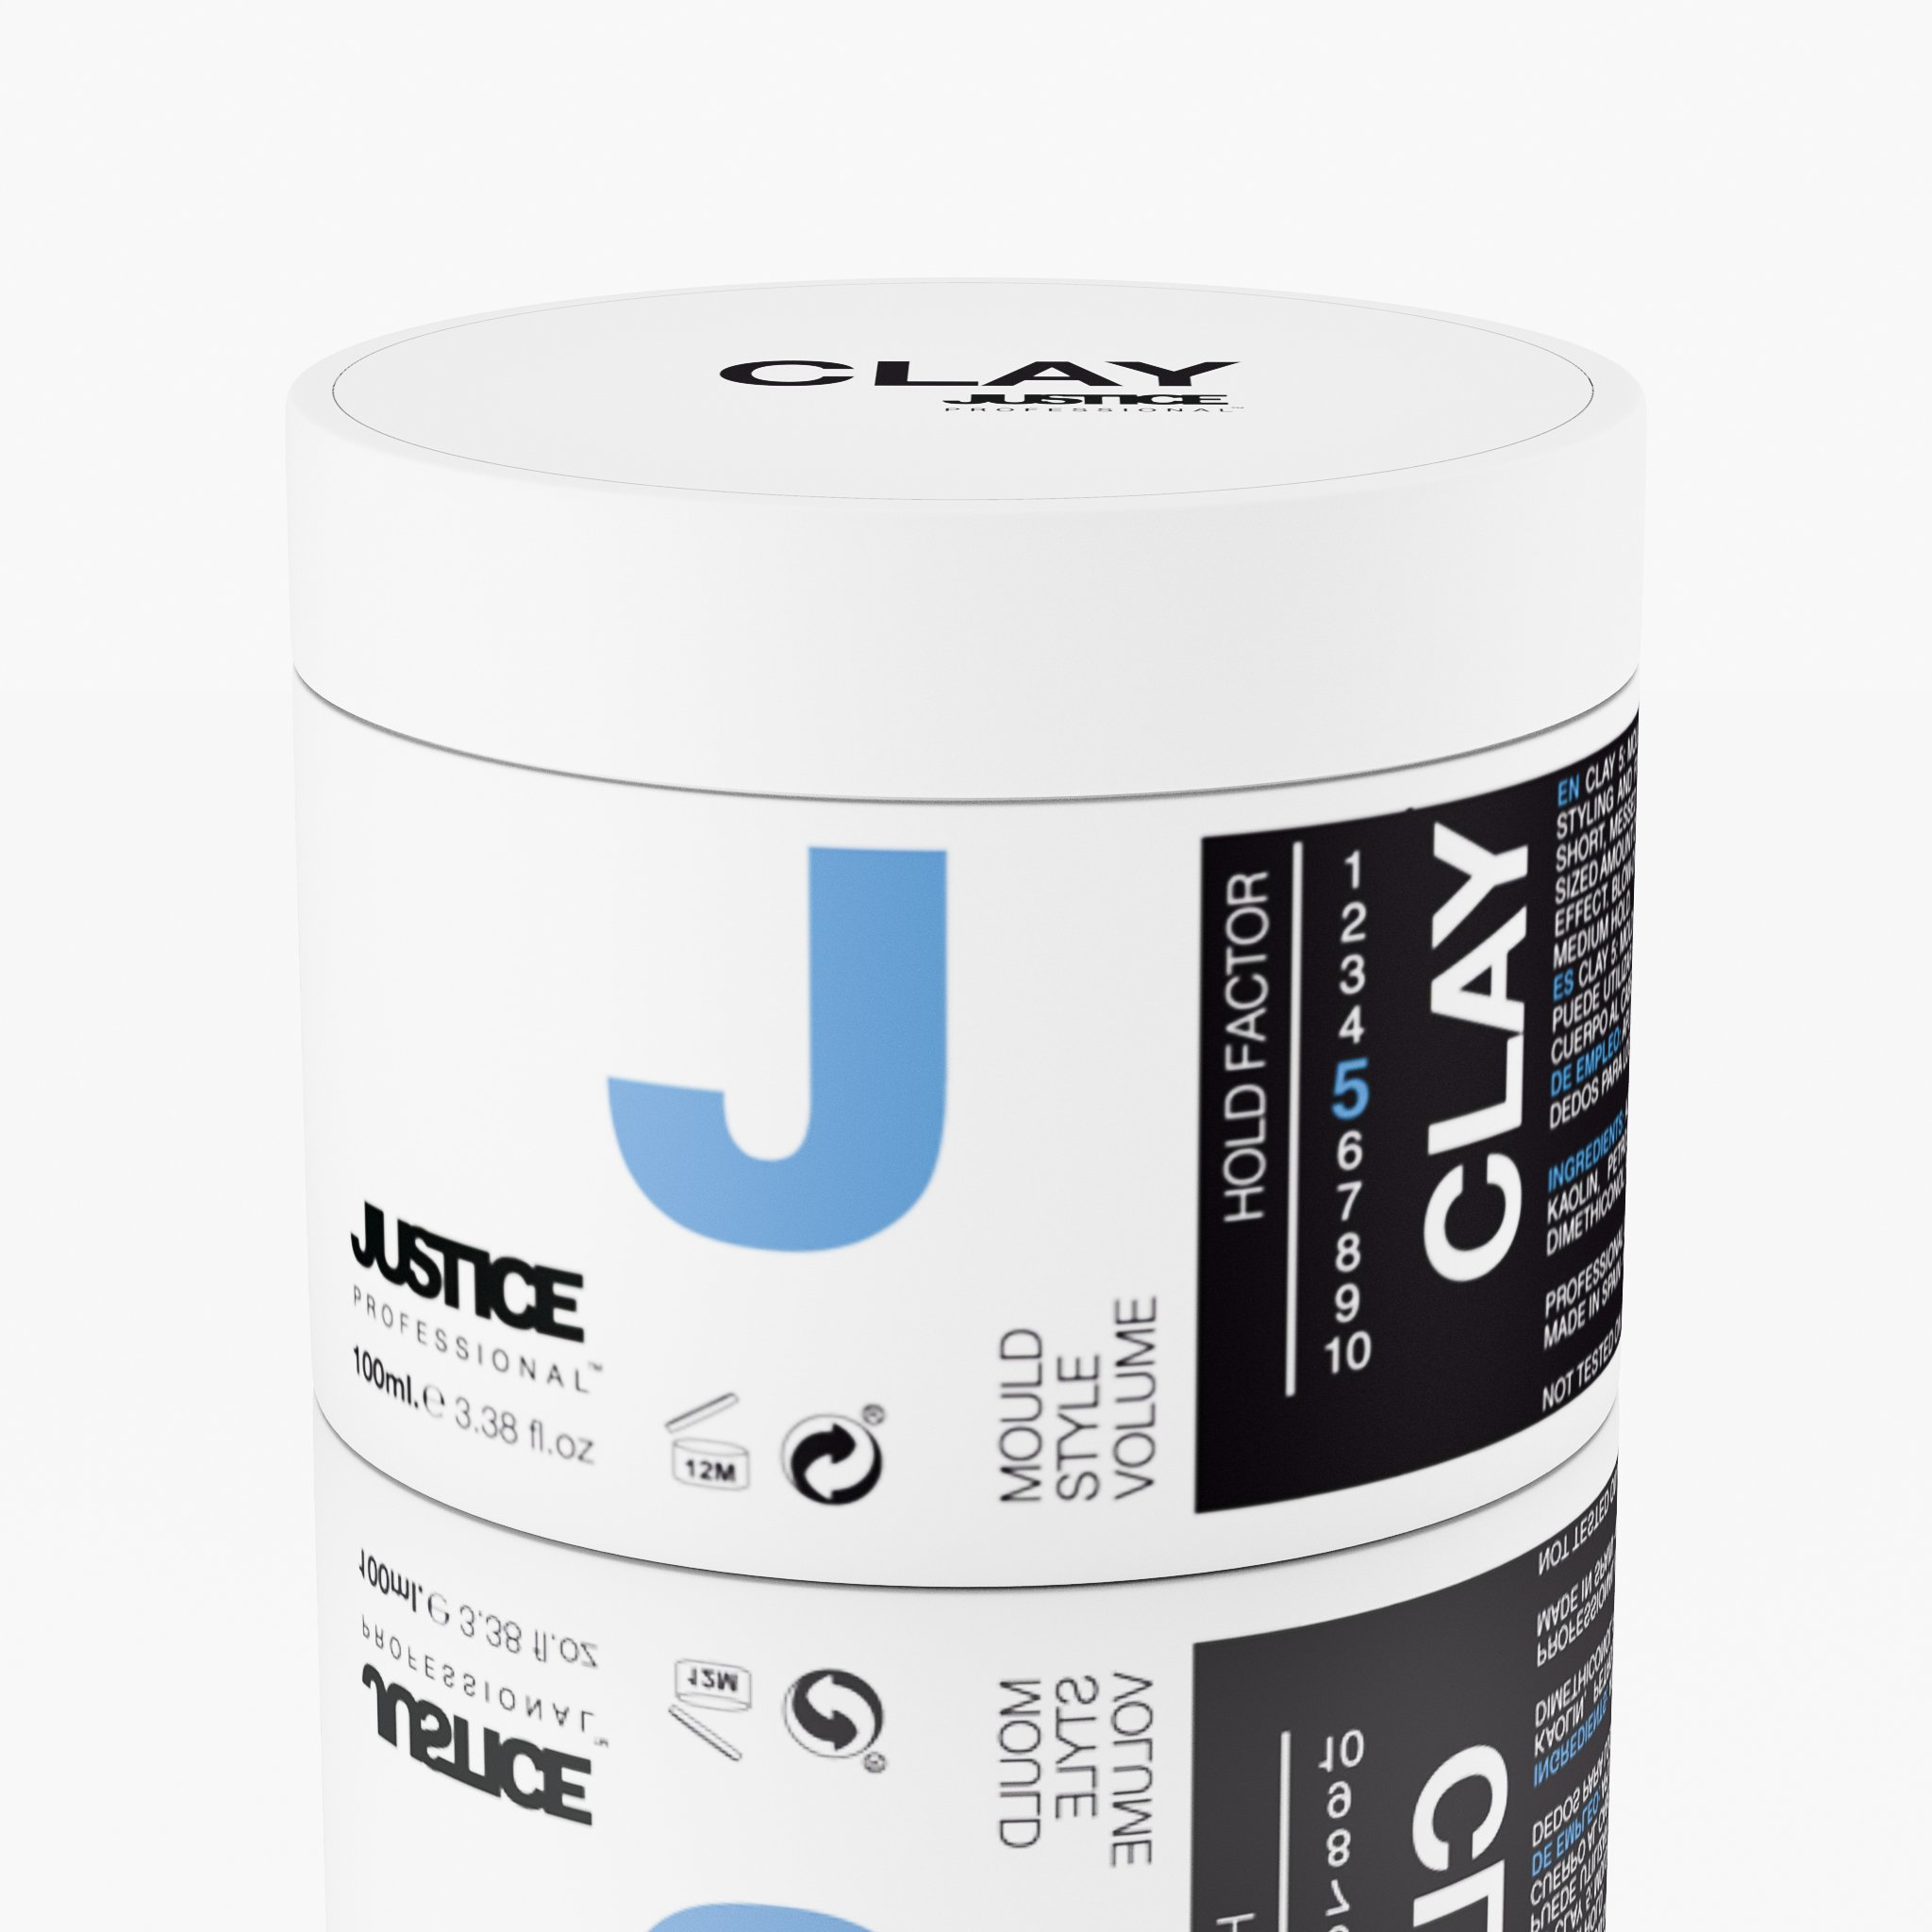 Medium Hold Hair Styling Clay for Men and Women -Thicker Fuller Texture, Minimal Shine, Anti Humidity Natural Kaolin Wax Cream - Short Messed Up Styles With No Crunch/JUSTICE Professional 100ml 3.4oz